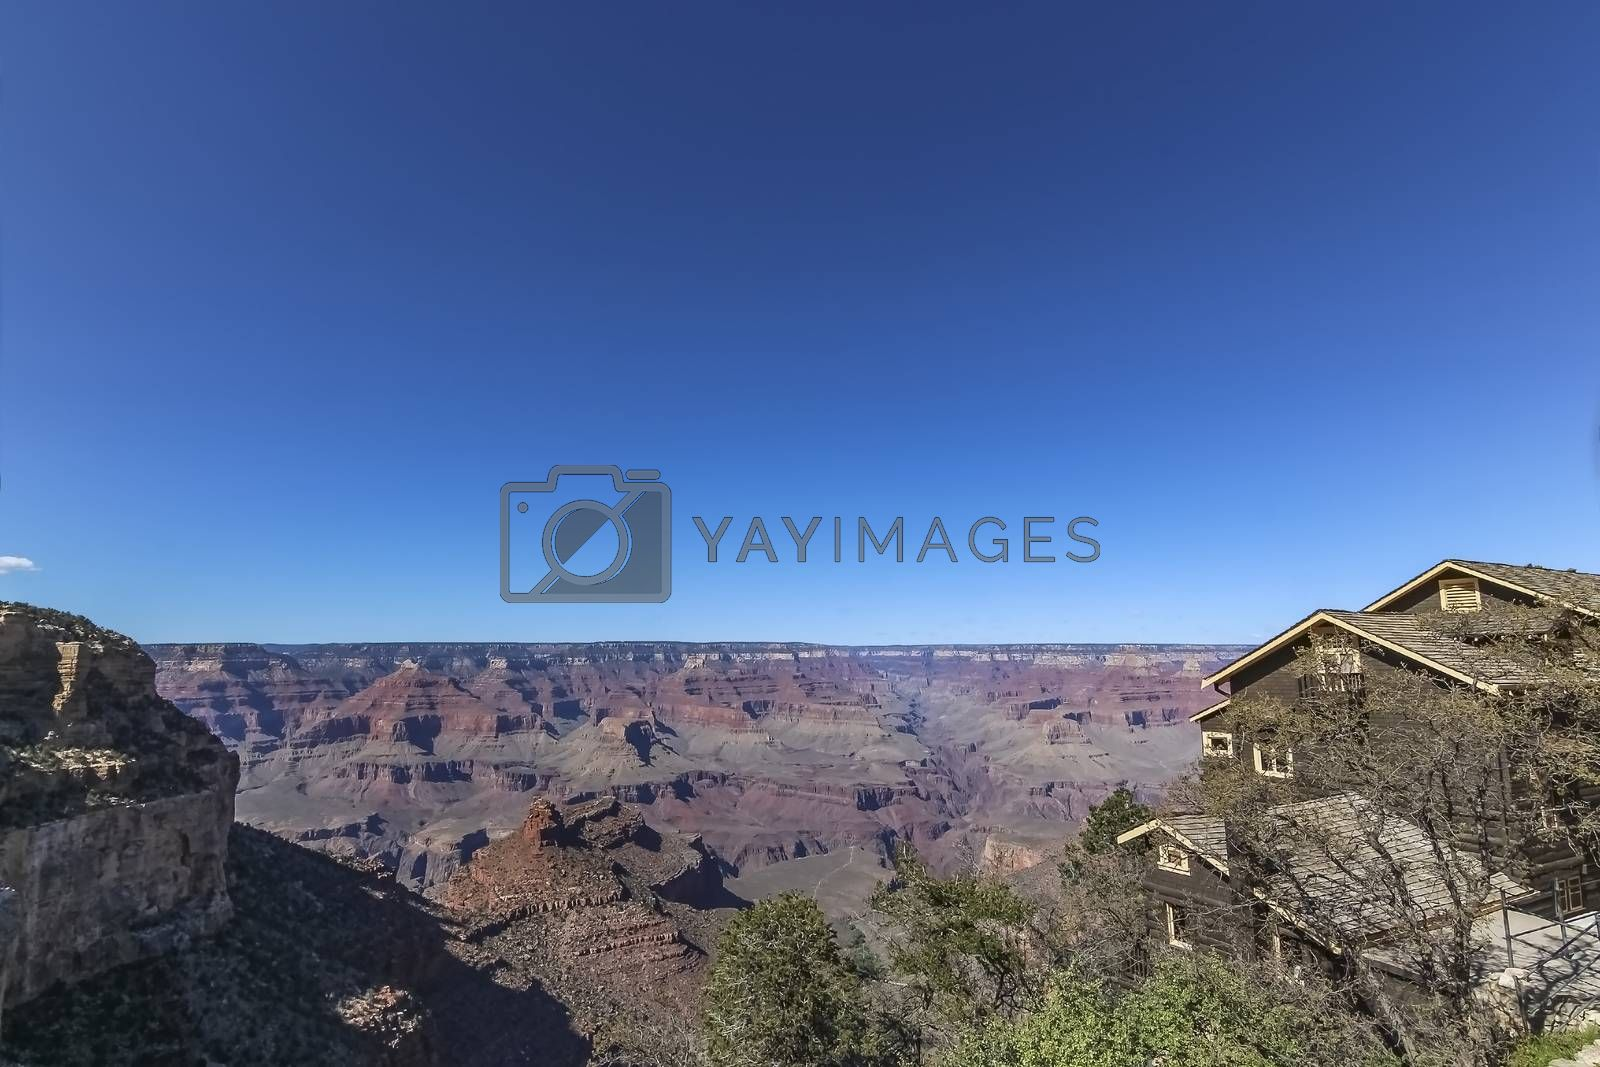 The Grand Canyon carved by the Colorado River in Arizona, United States, considered one the wonders of the world